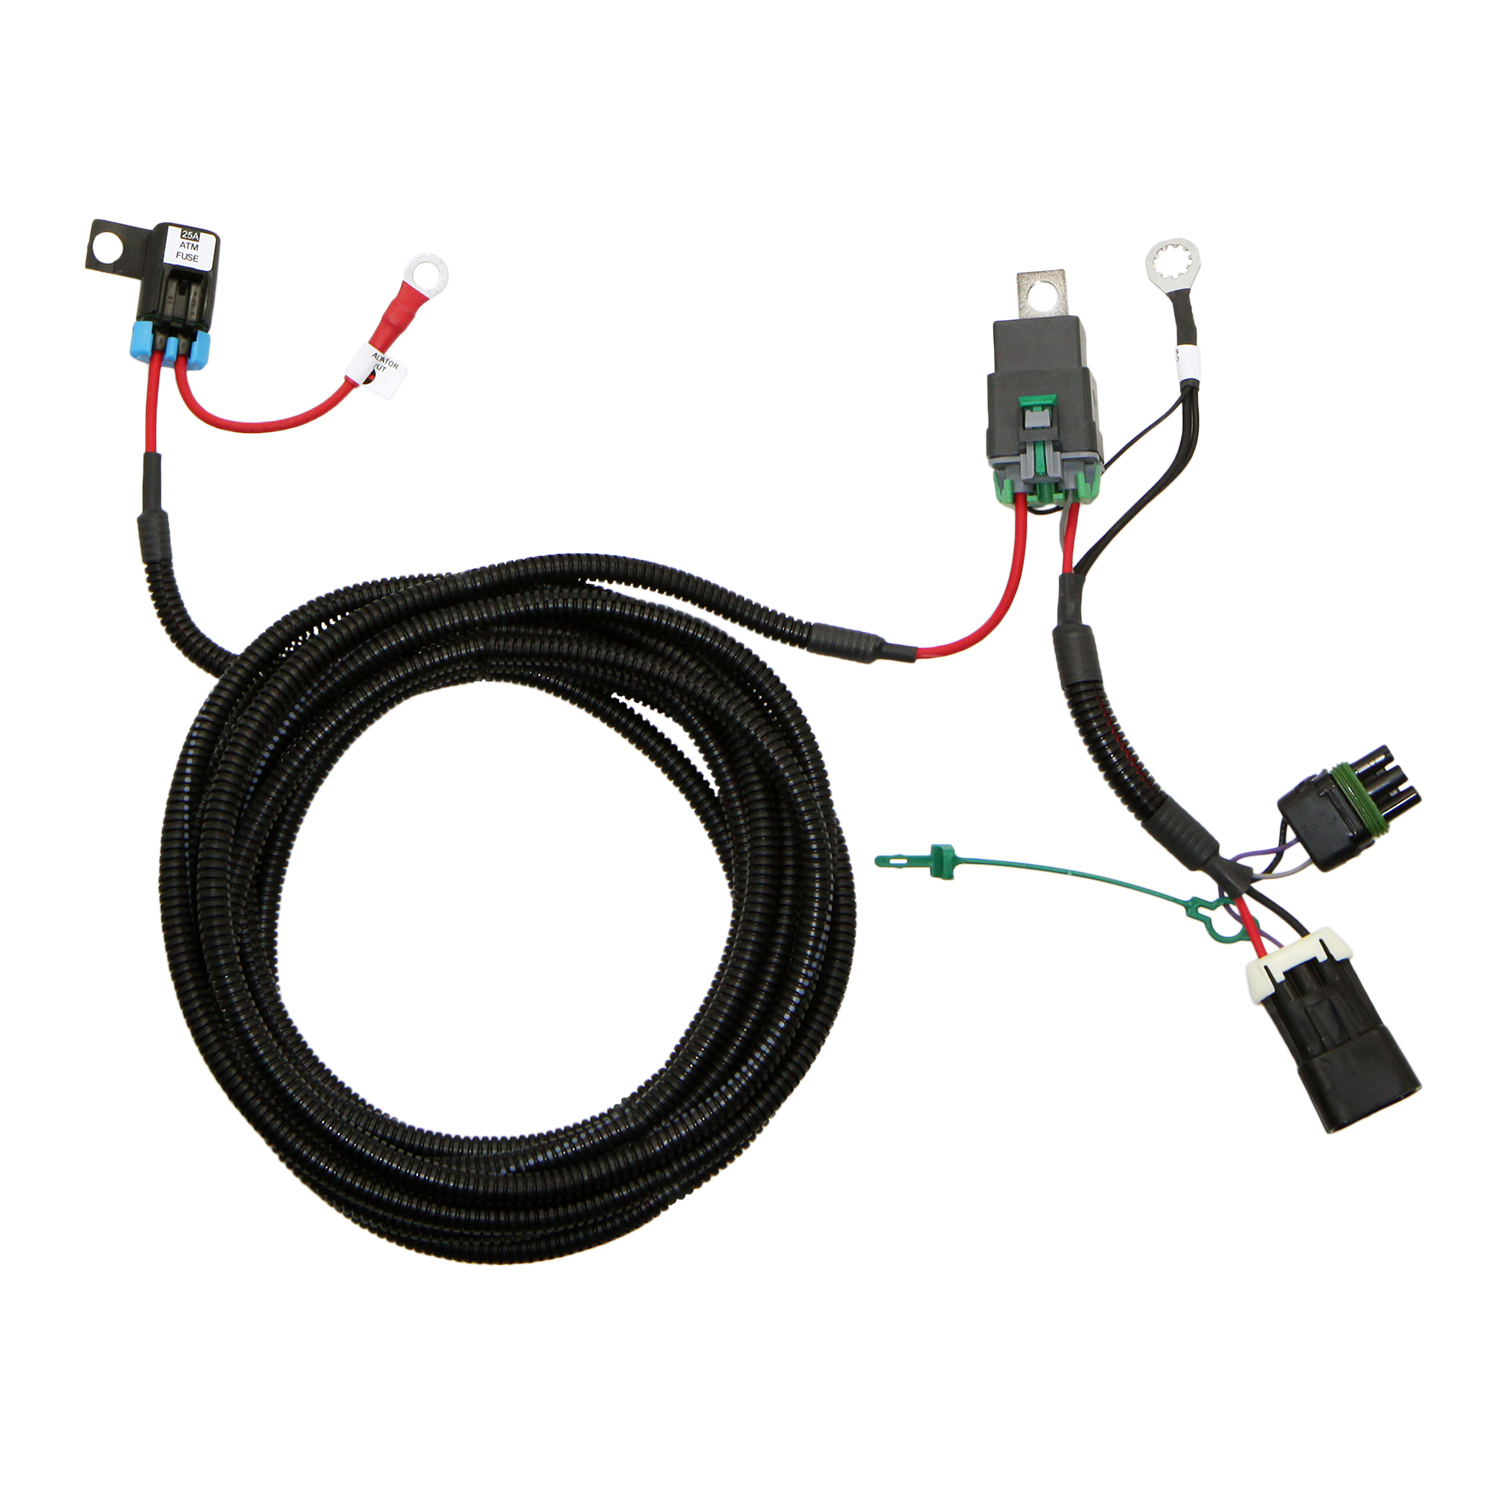 blt1 fuel pump wiring harness hd* (fpwh 018) fuel pump hotwire Cable Harness blt1 fuel pump wiring harness hd*